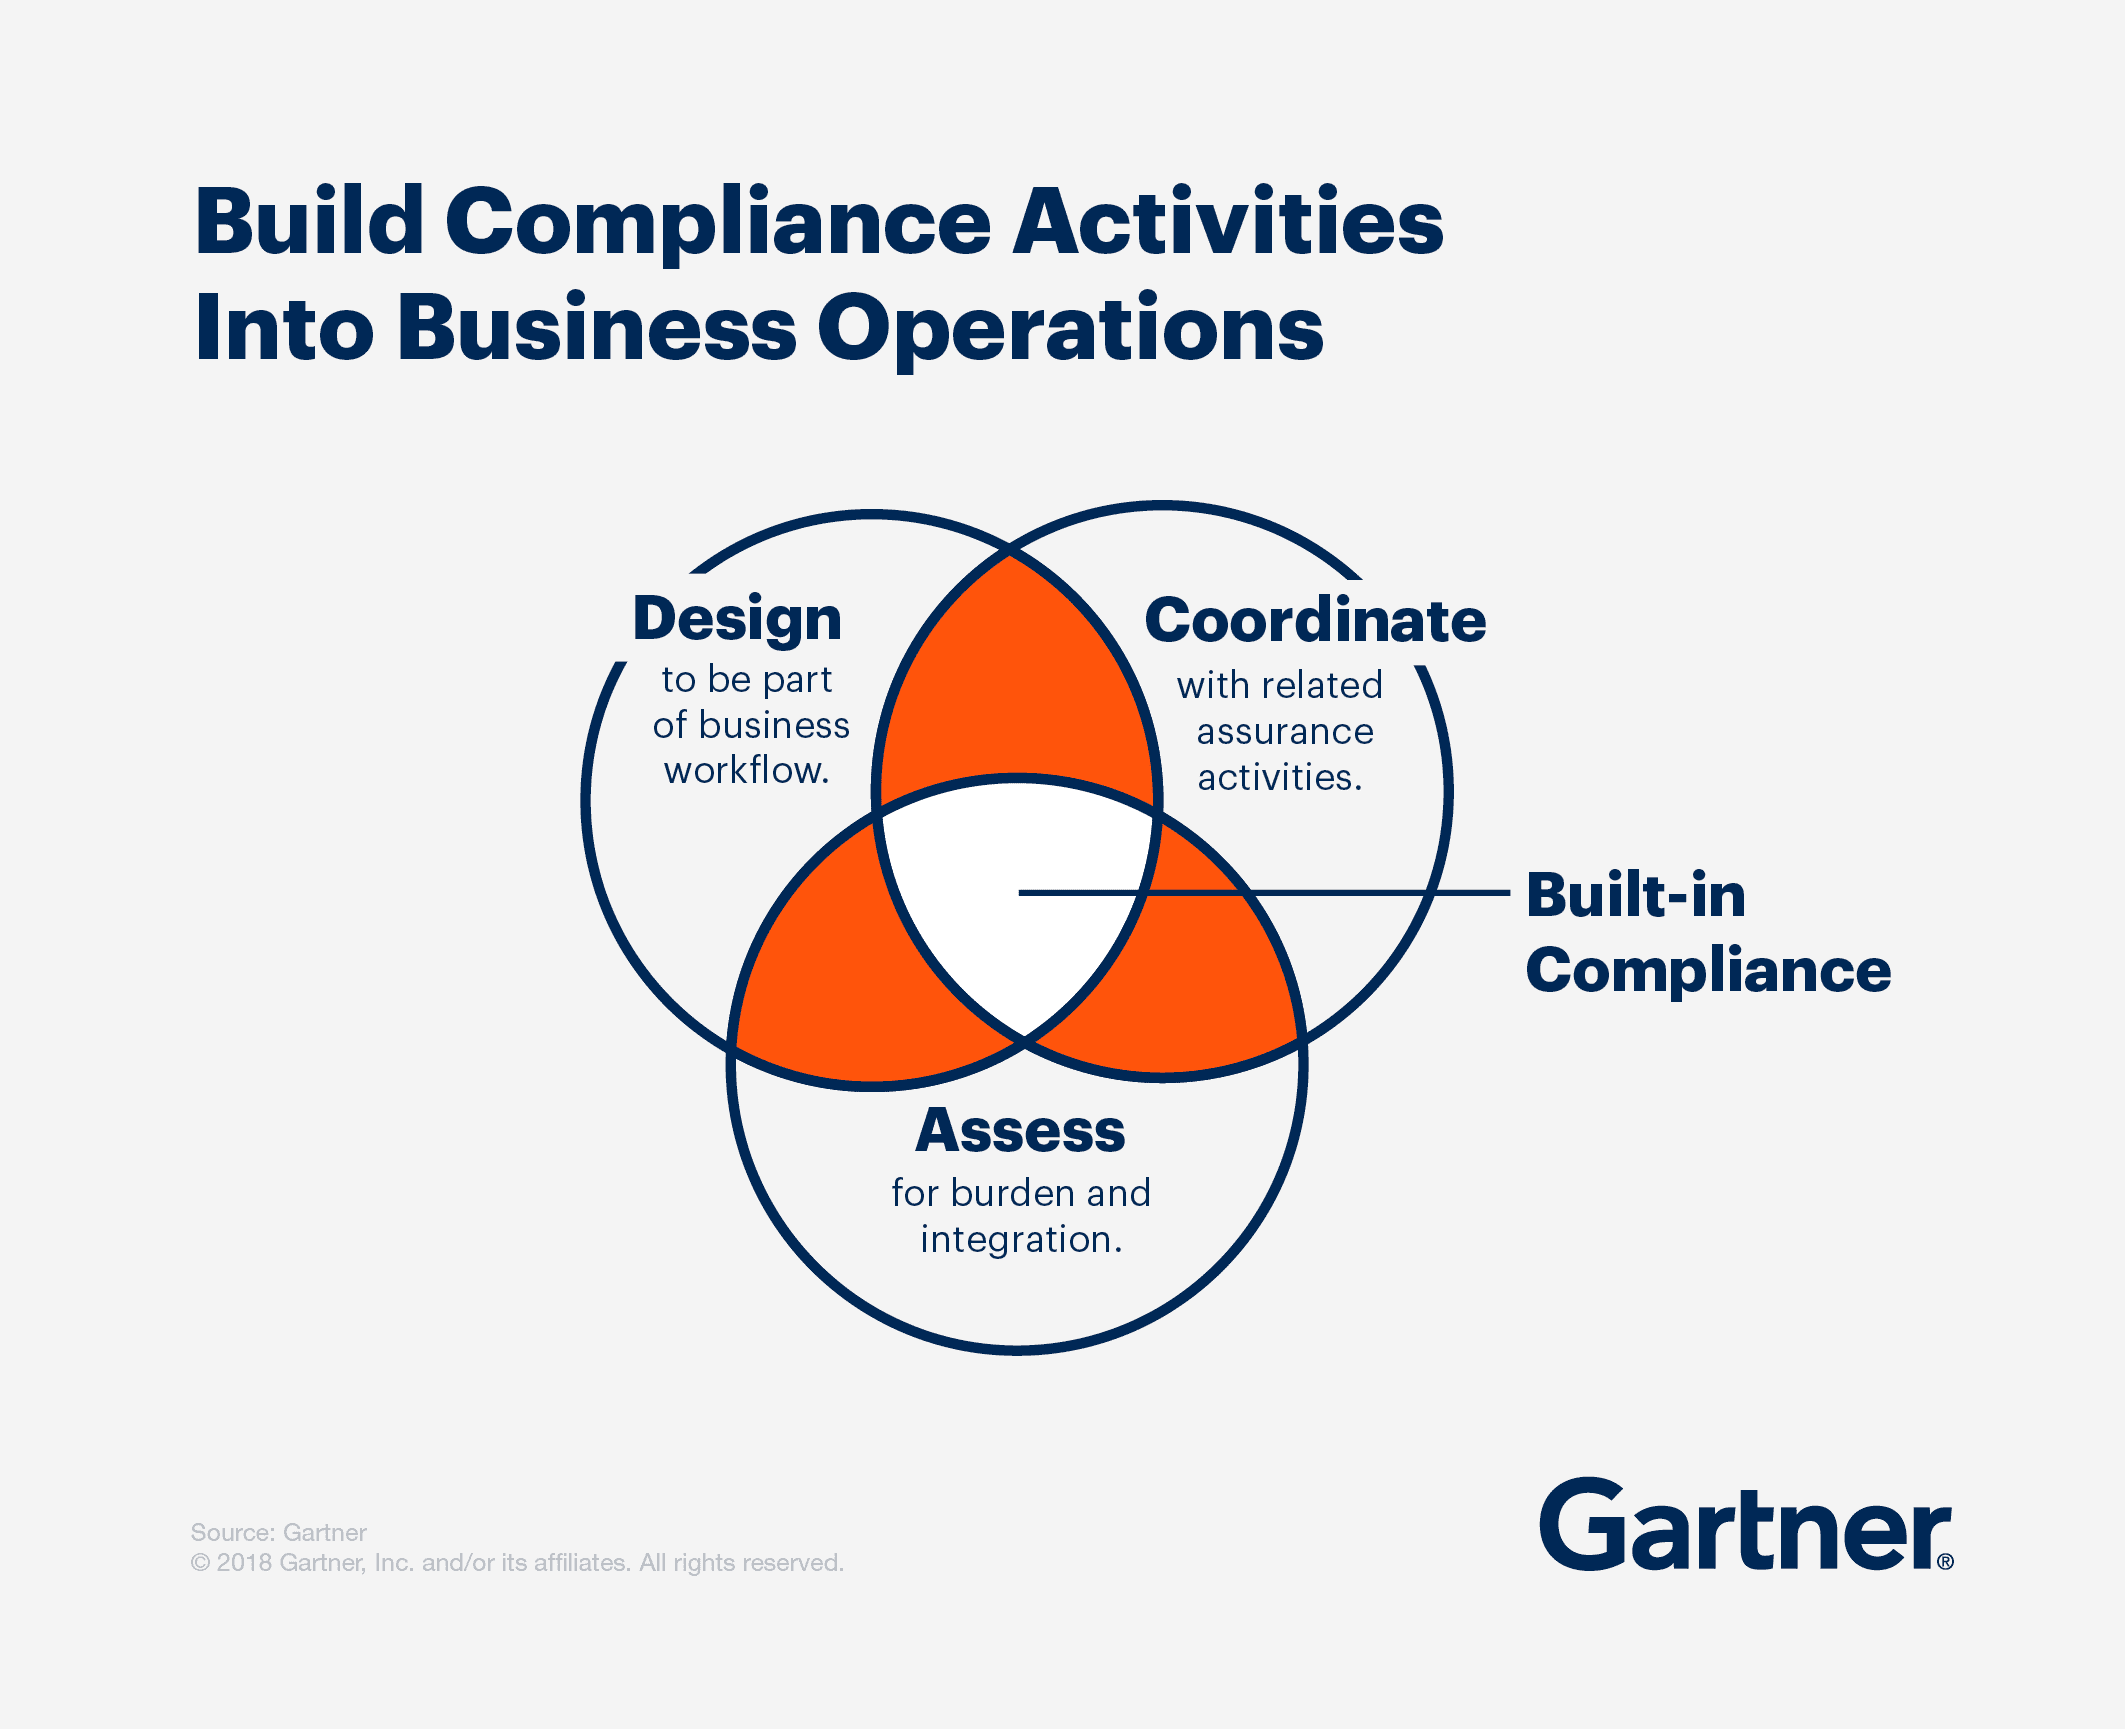 Build compliance activities into business operations: (1) Design to be part of business workflow; (2) Coordinate with related assurance activities; and (3) Assess for burden and integration.